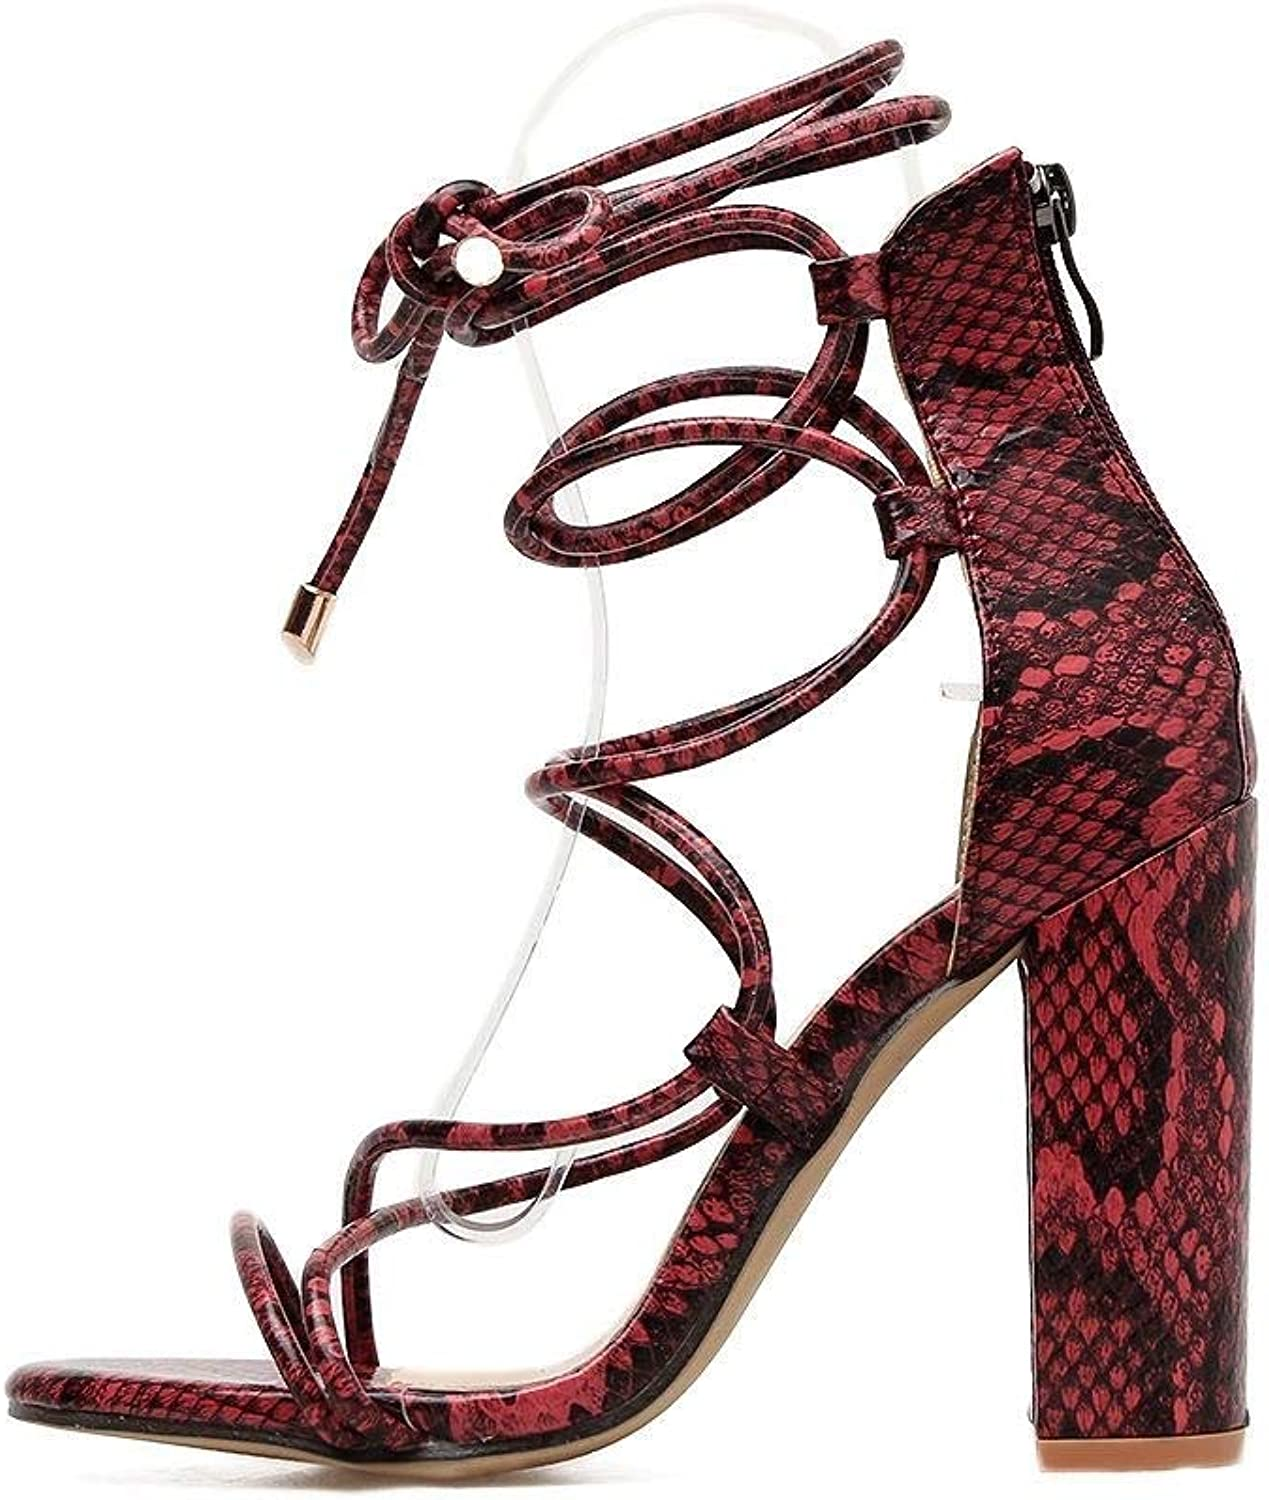 Kirabon Ladies Sexy High Heels Summer Fish Mouth Open Toe Thick with Cross Straps Thick with High Heel Sandals (color   Snakeskin, Size   39)